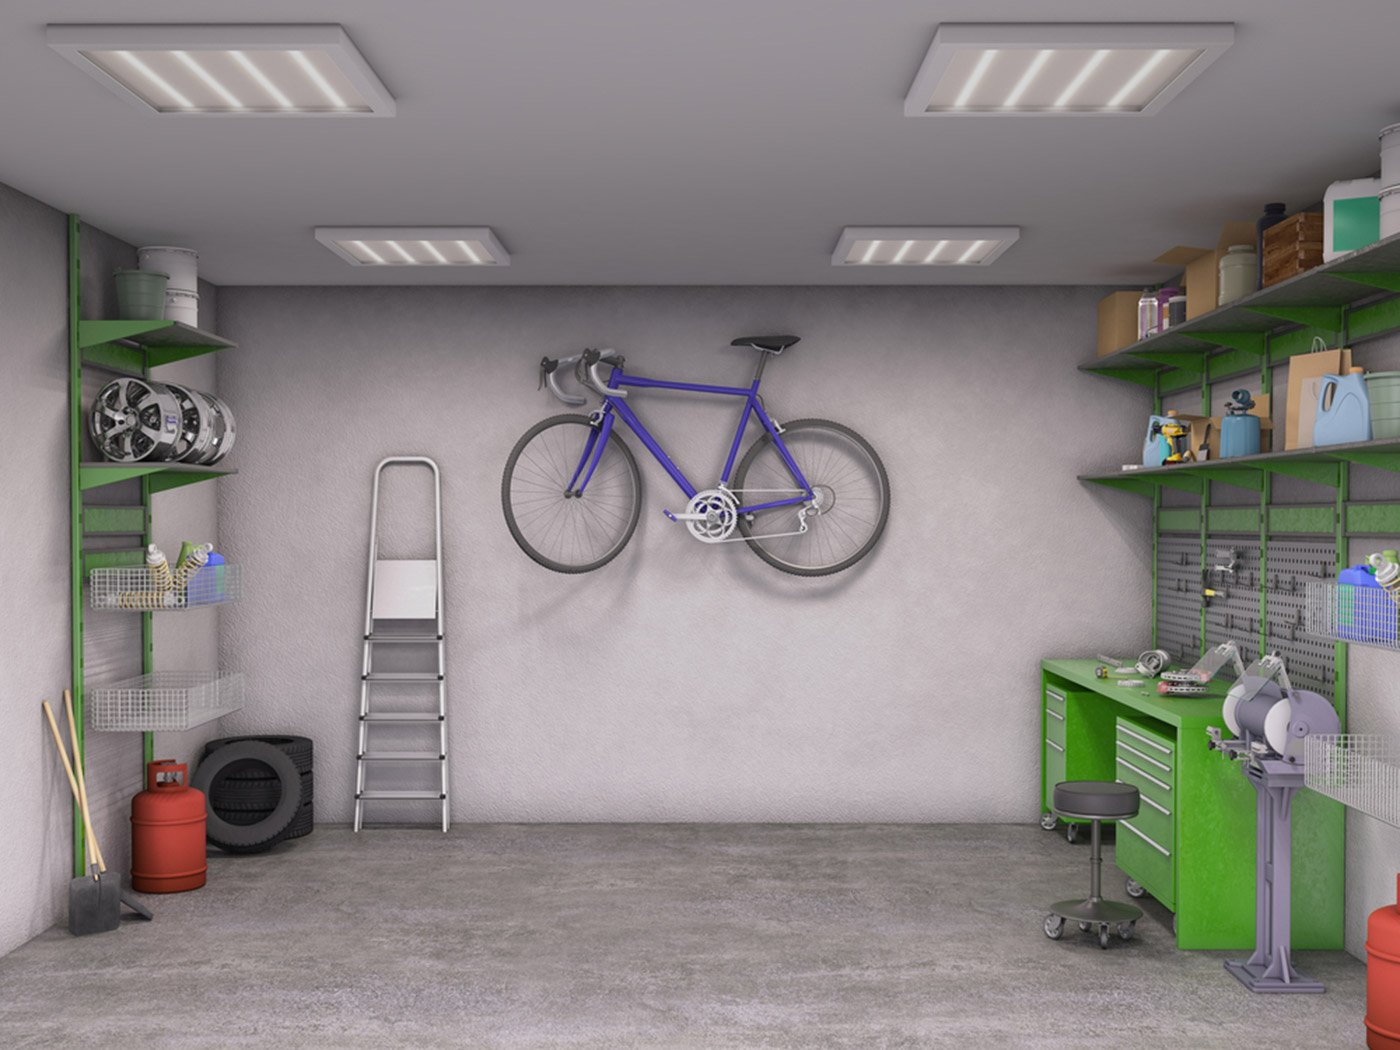 Decluttering With Storage Before a Sale or Redecoration